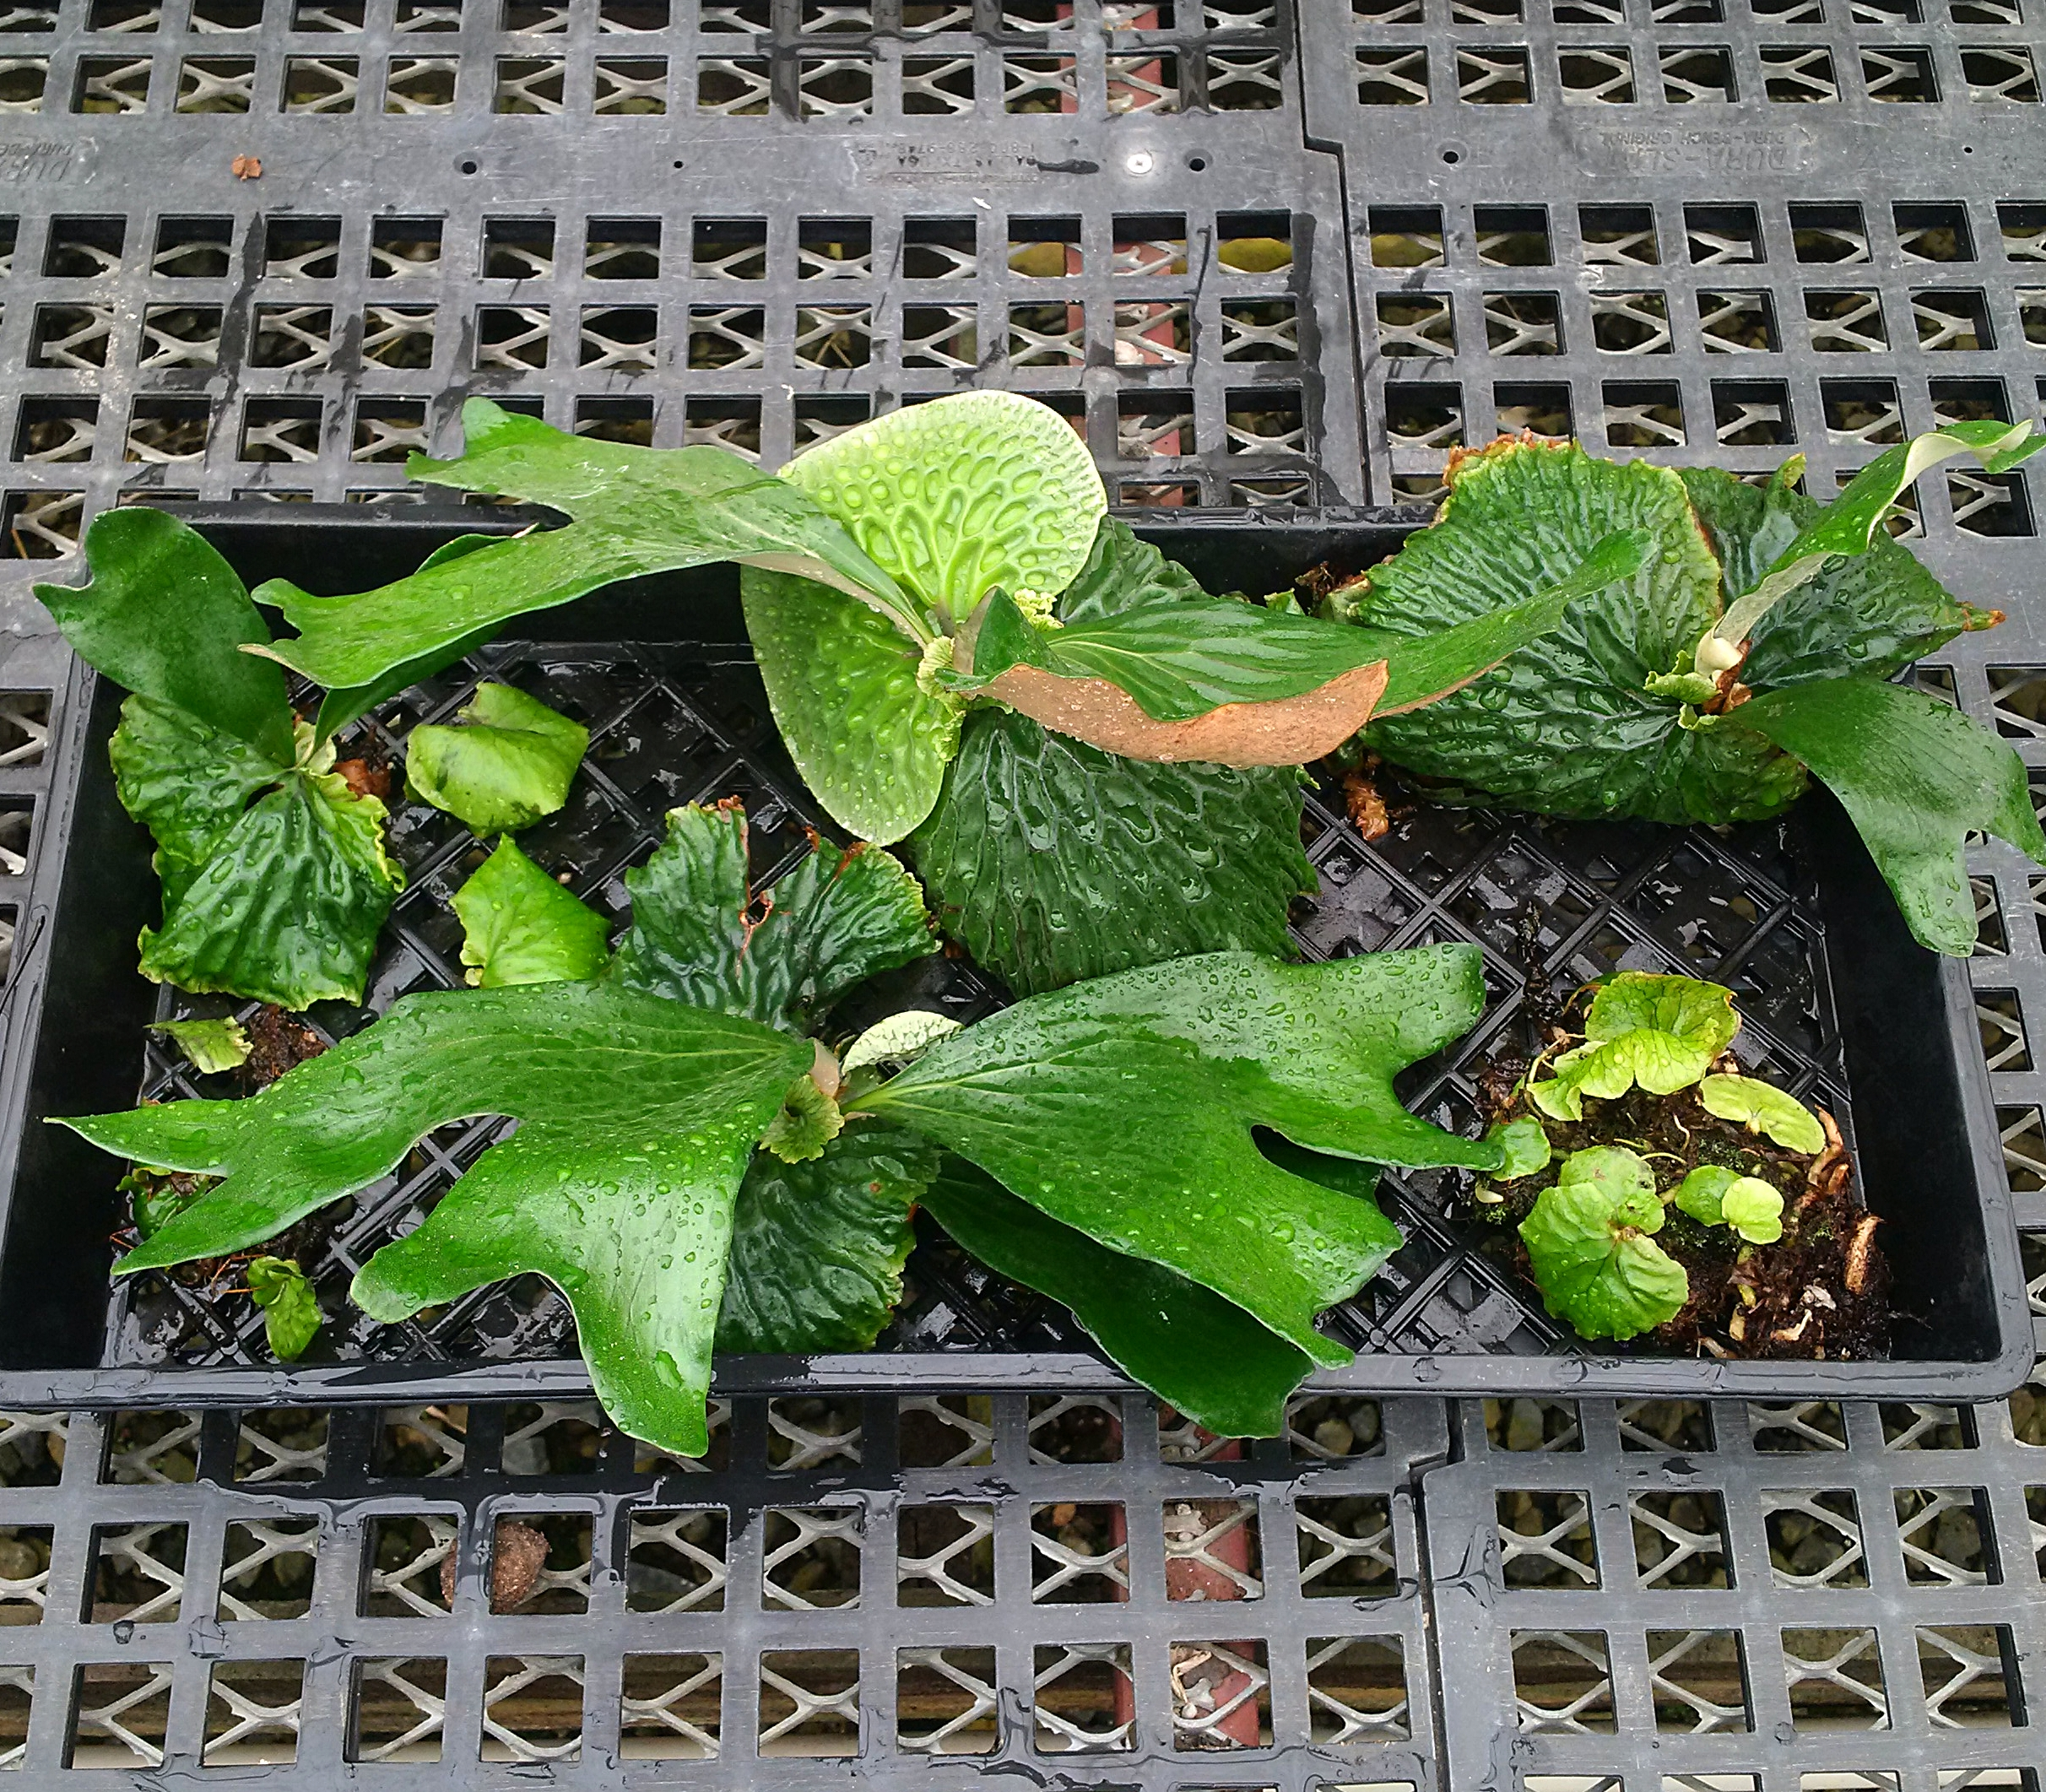 Several mature Madagascan staghorn ferns and assorted pups removed from the display mount shown and discussed above. Note the dense rhizome mass on the lower right with multiple offsets sprouting from this clump